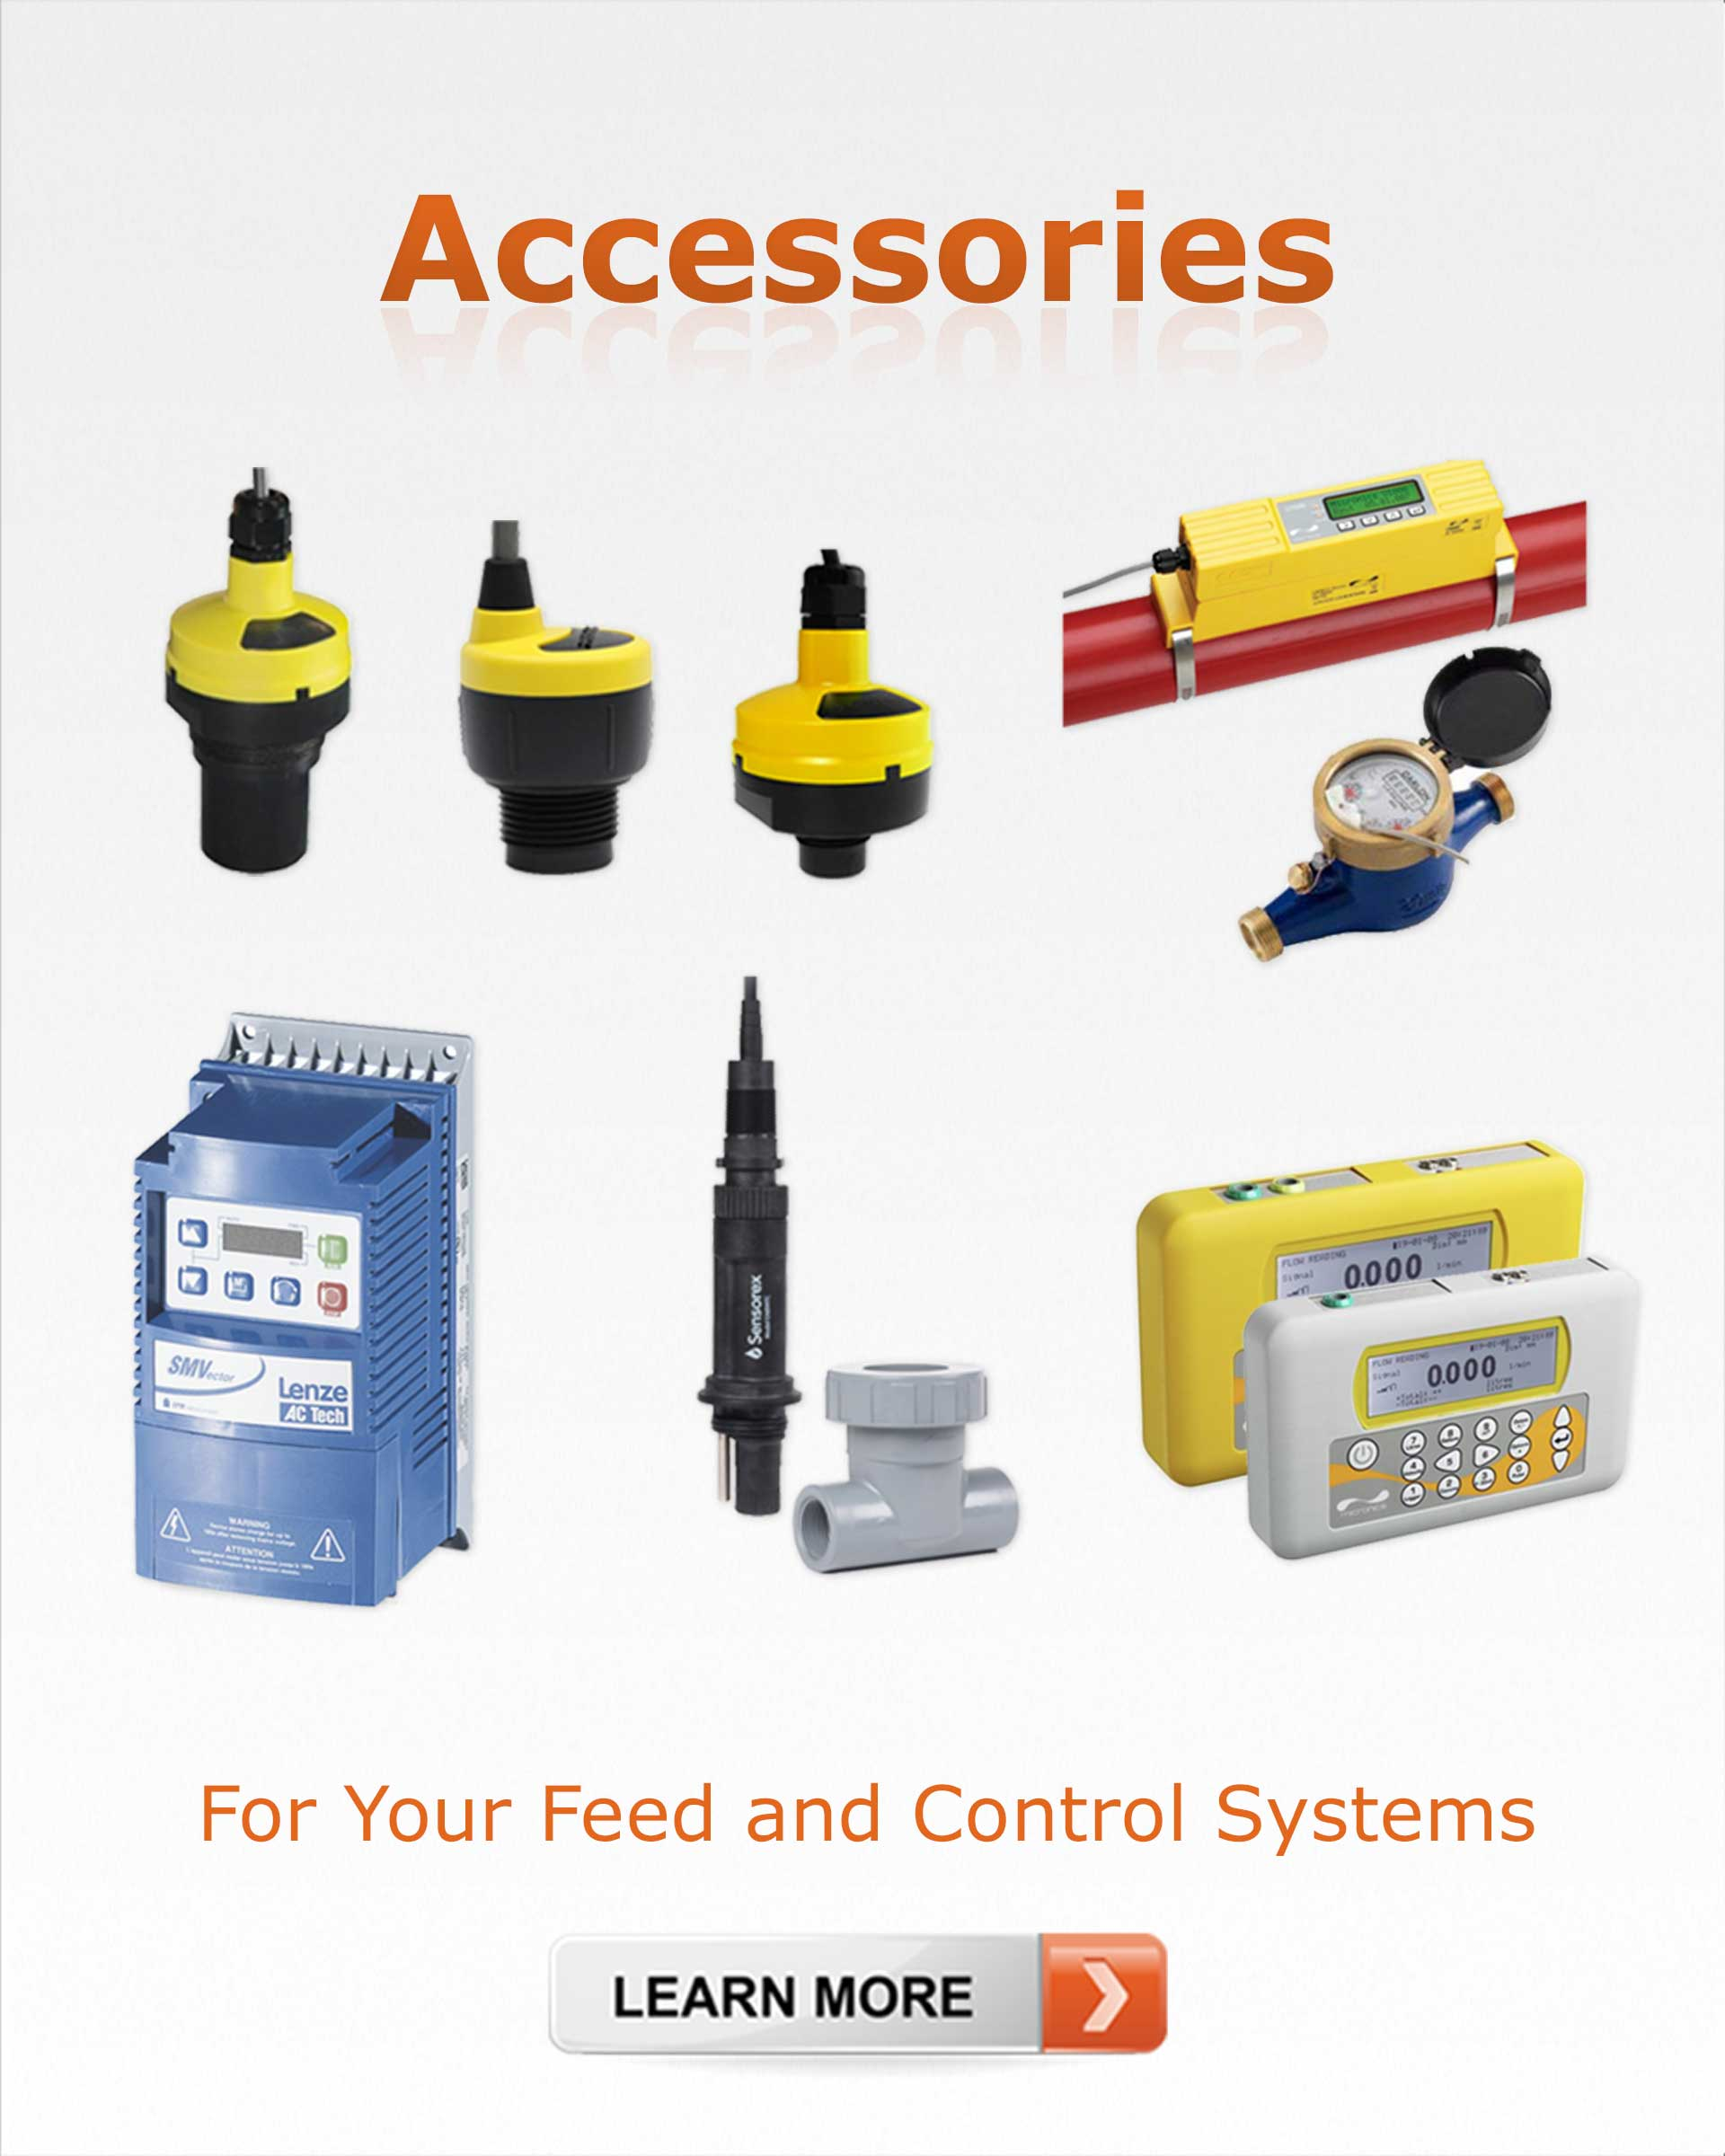 H2trOnics - Water Treatment Solutions